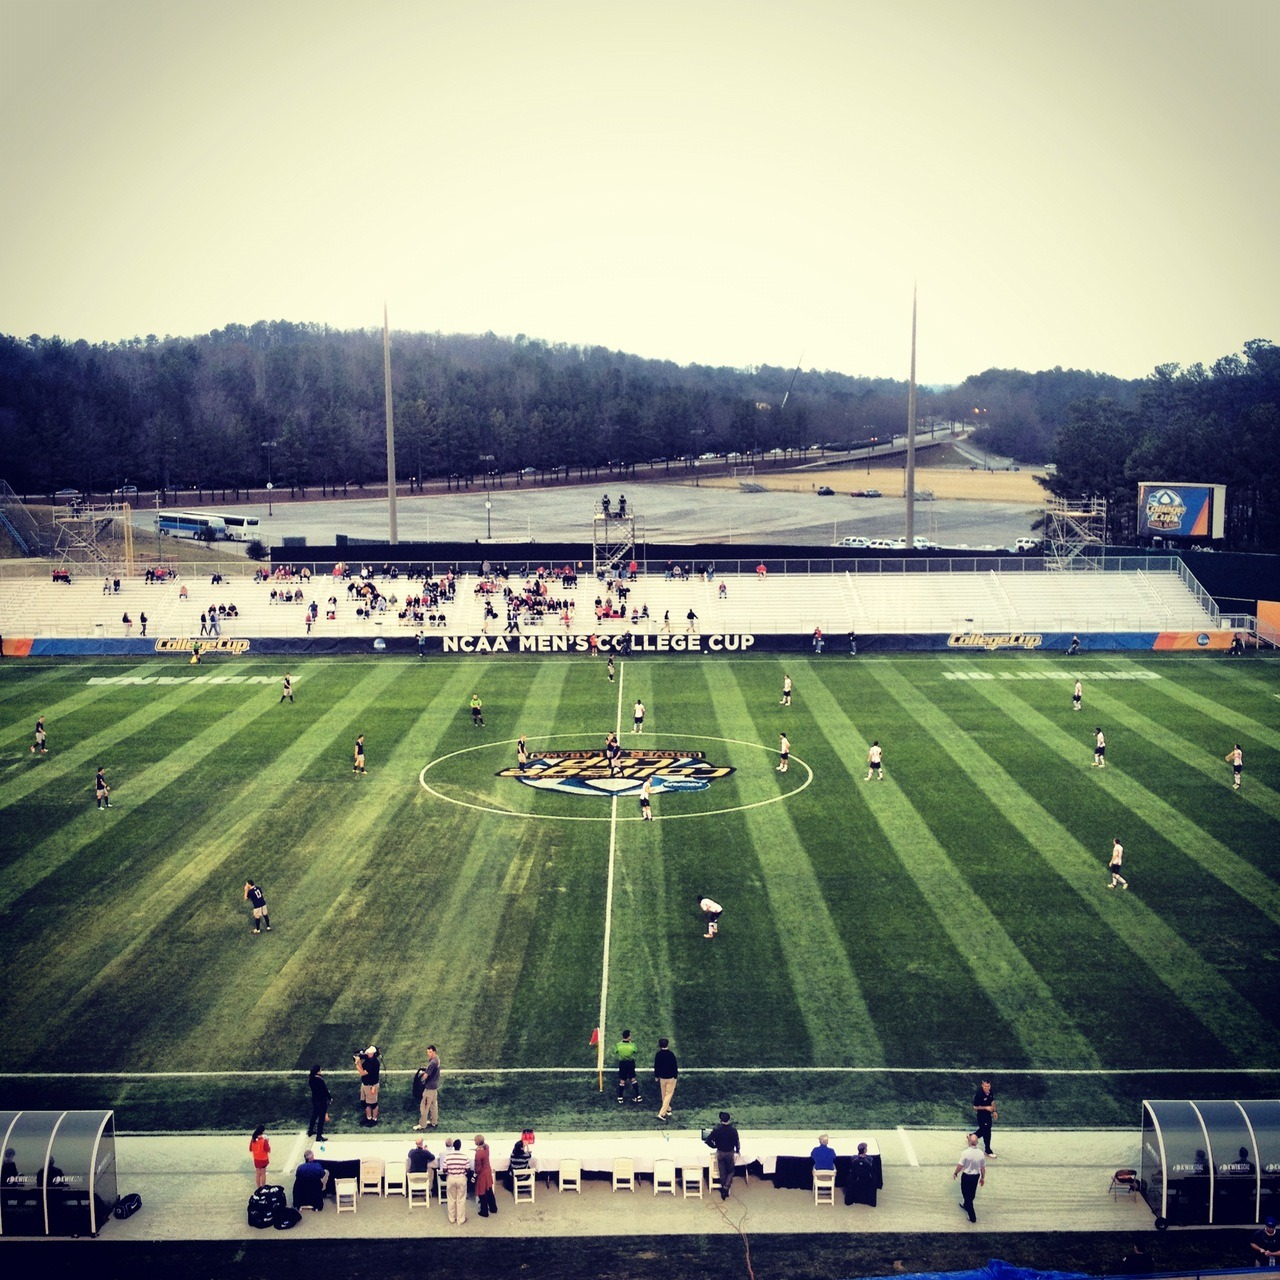 danieljtgallen:  Start of College Cup between Georgetown and Maryland on Dec. 7, 2012